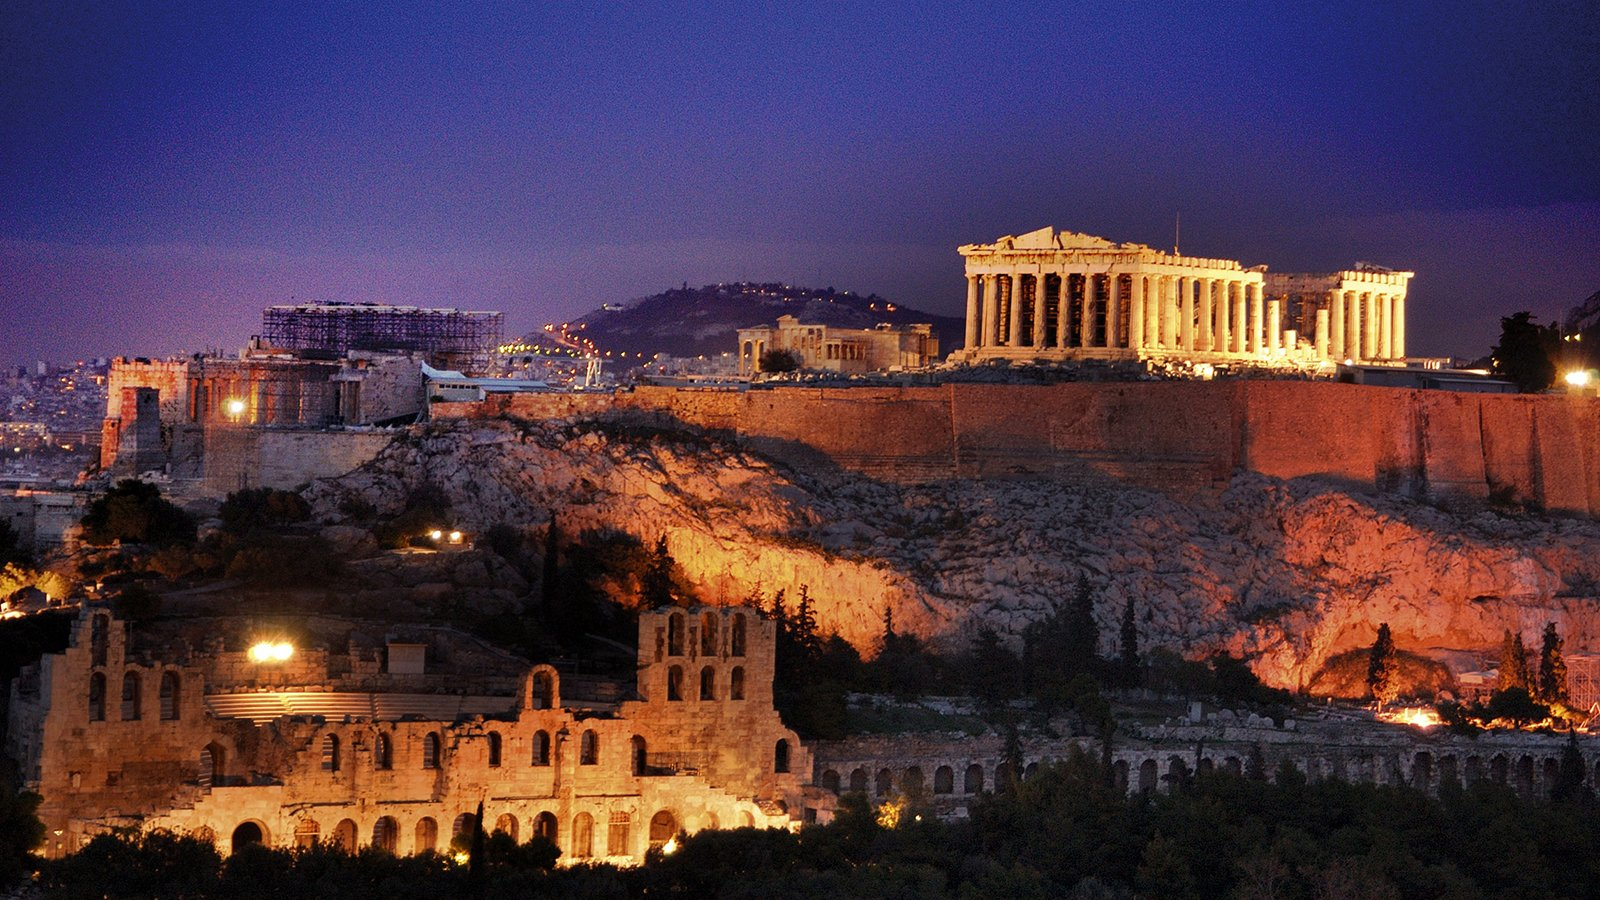 Wallpaper Blink - Athens Wallpaper HD 20 - 1600 X 900 for Android ...